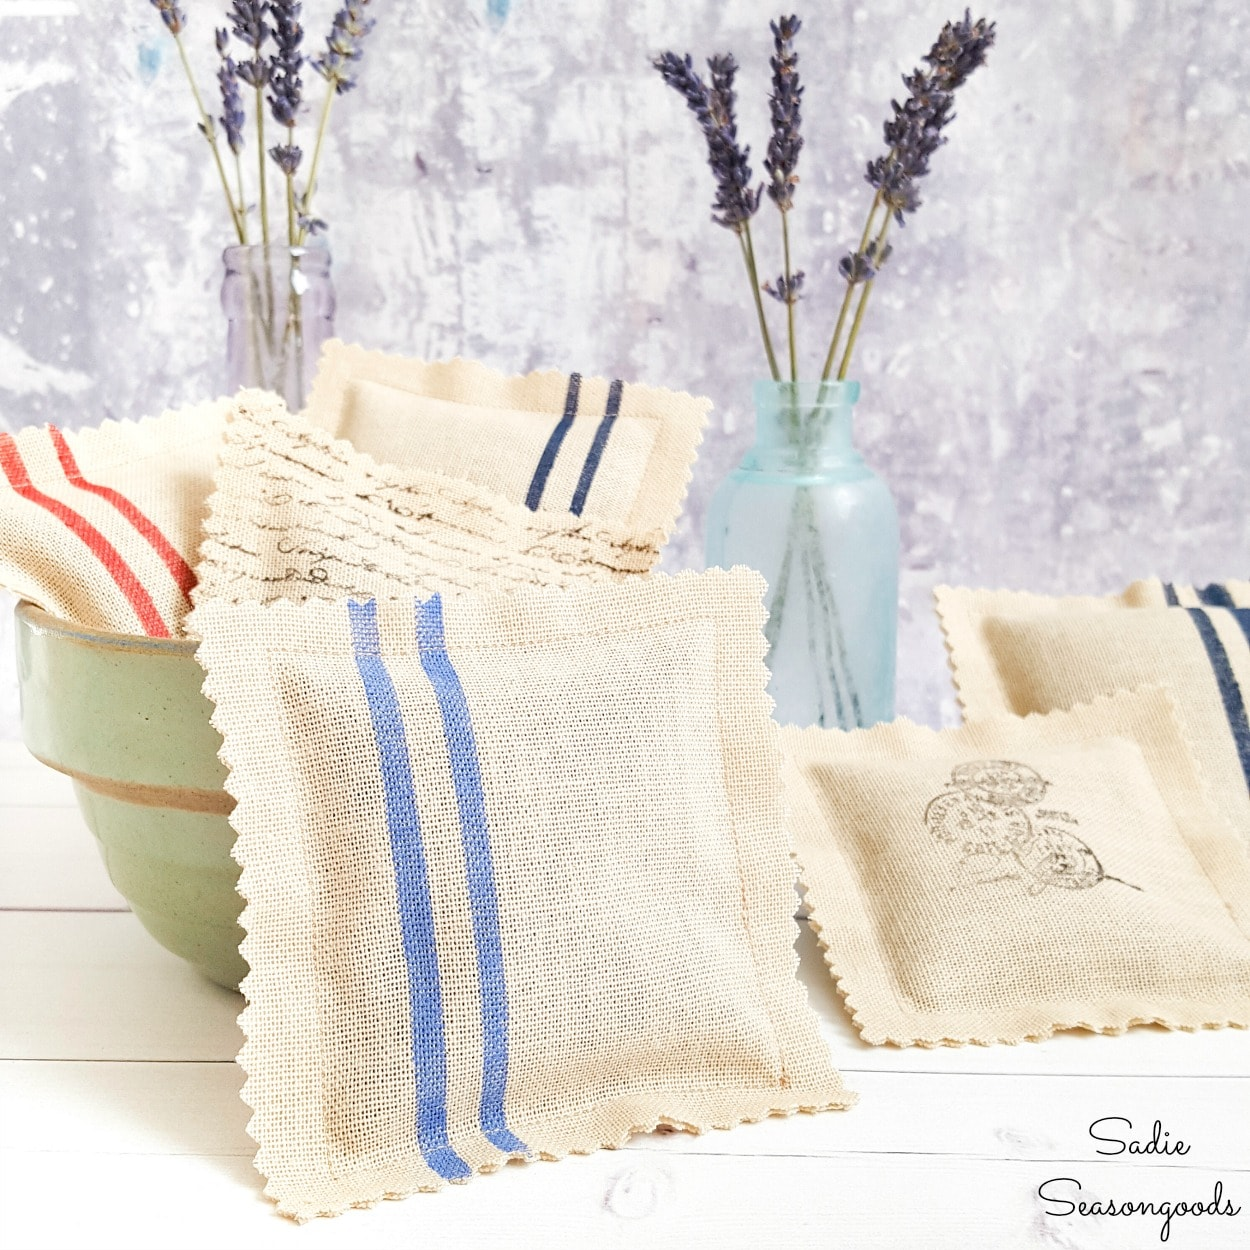 Faking the look of grain sack fabric for DIY lavender sachets